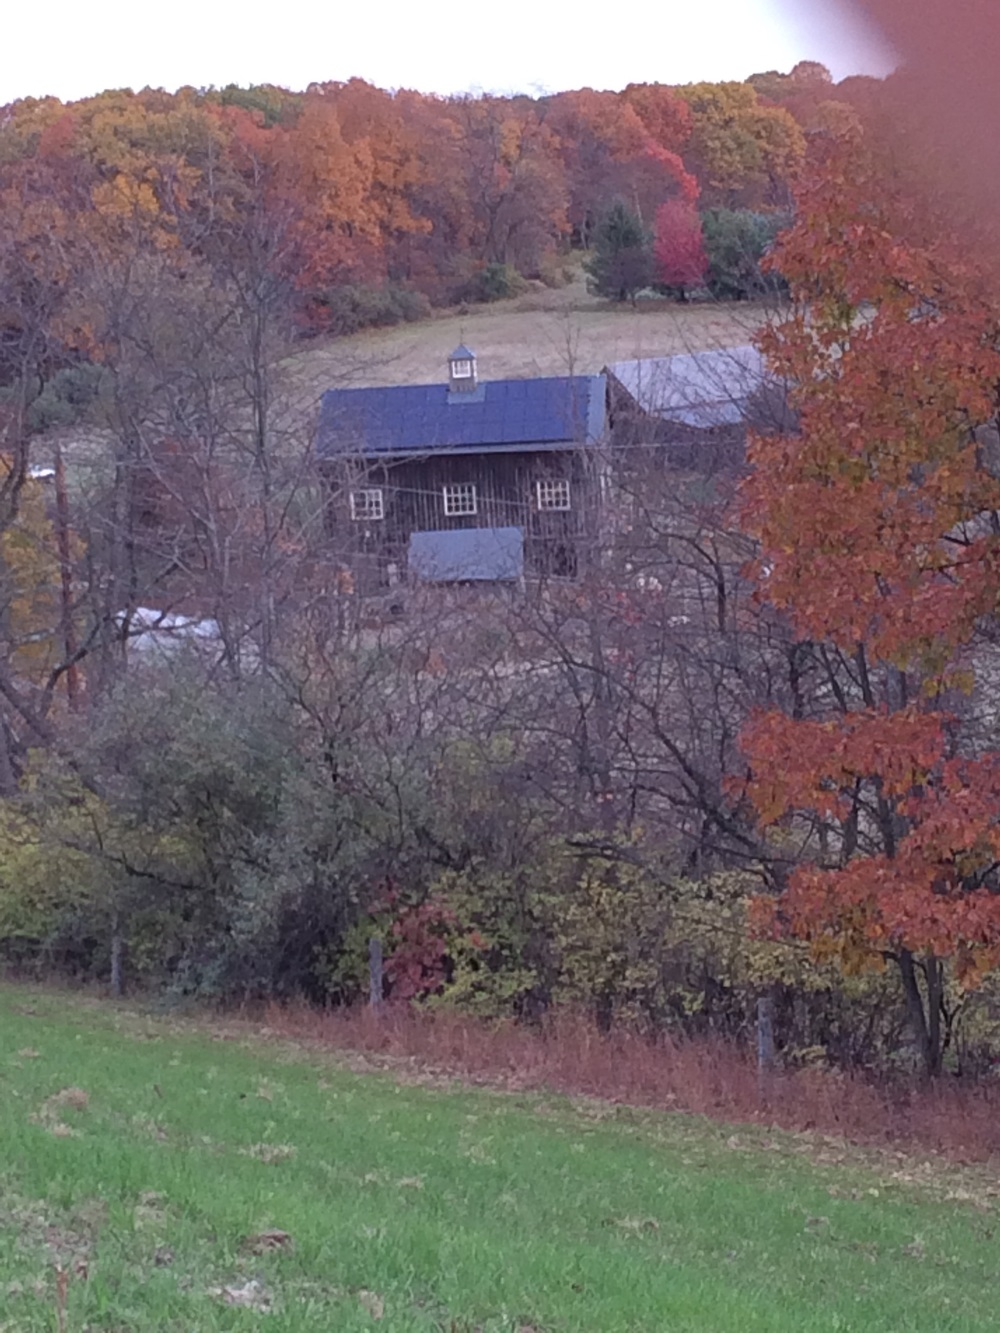 The Boat Barn sits across the drive, behind and a little to the right of the Barn.